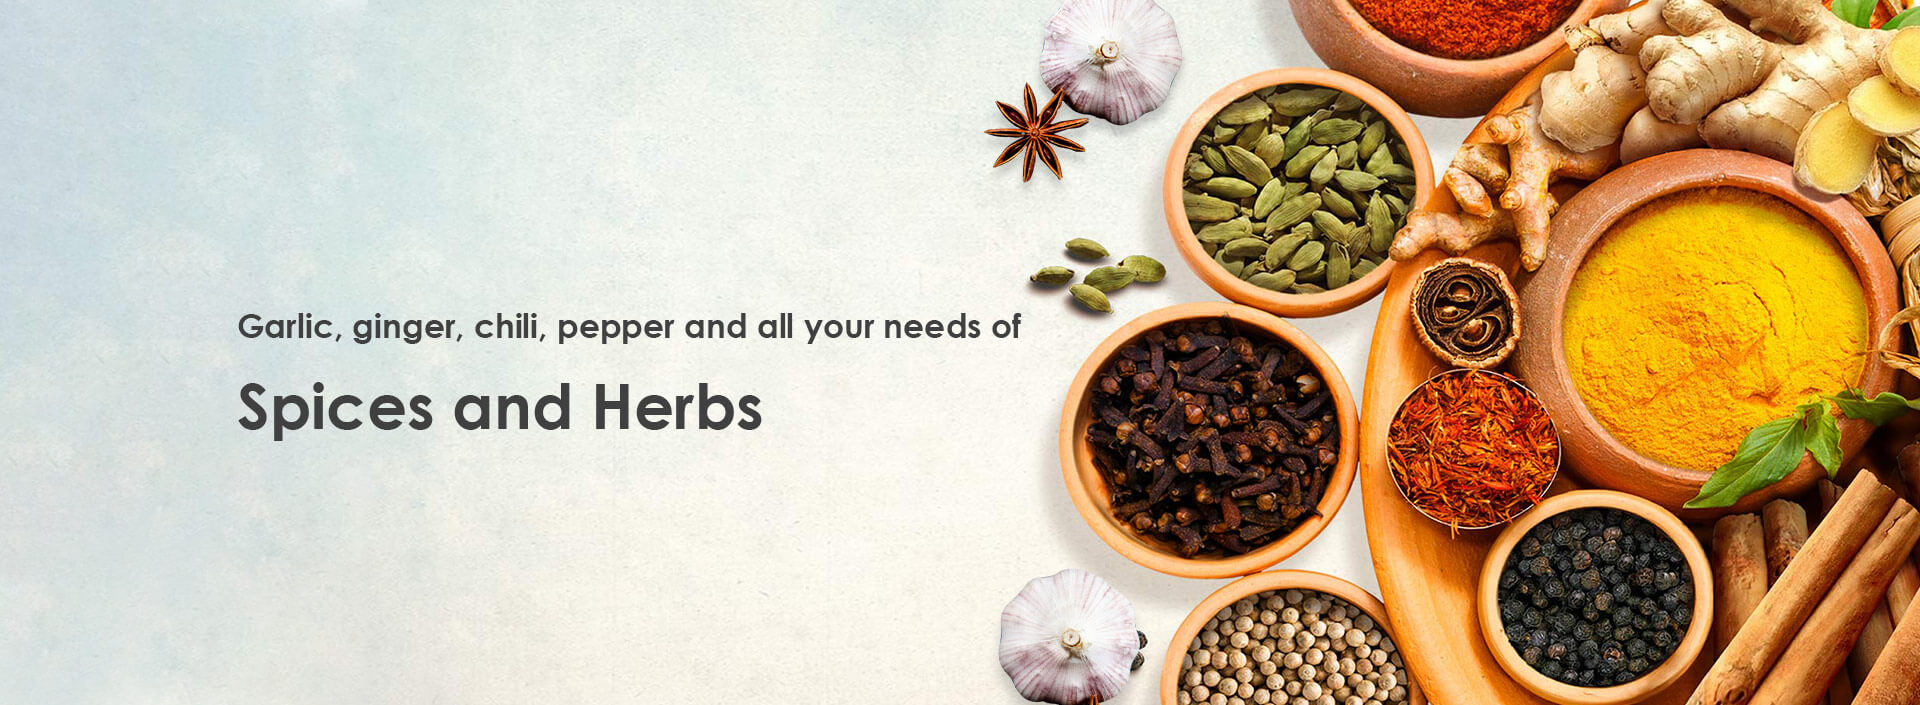 Garlic, ginger, chili, pepper and all your needs of spices and herbs